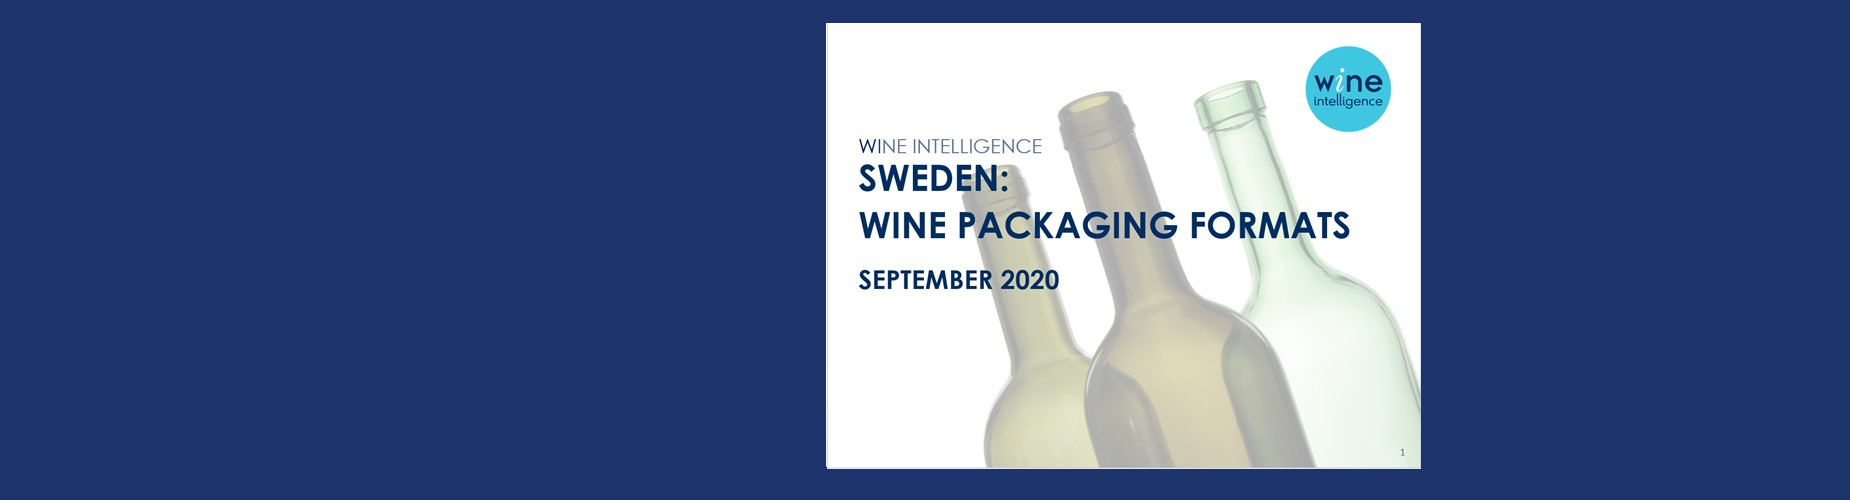 sweden packaging 2020 - About reports shop